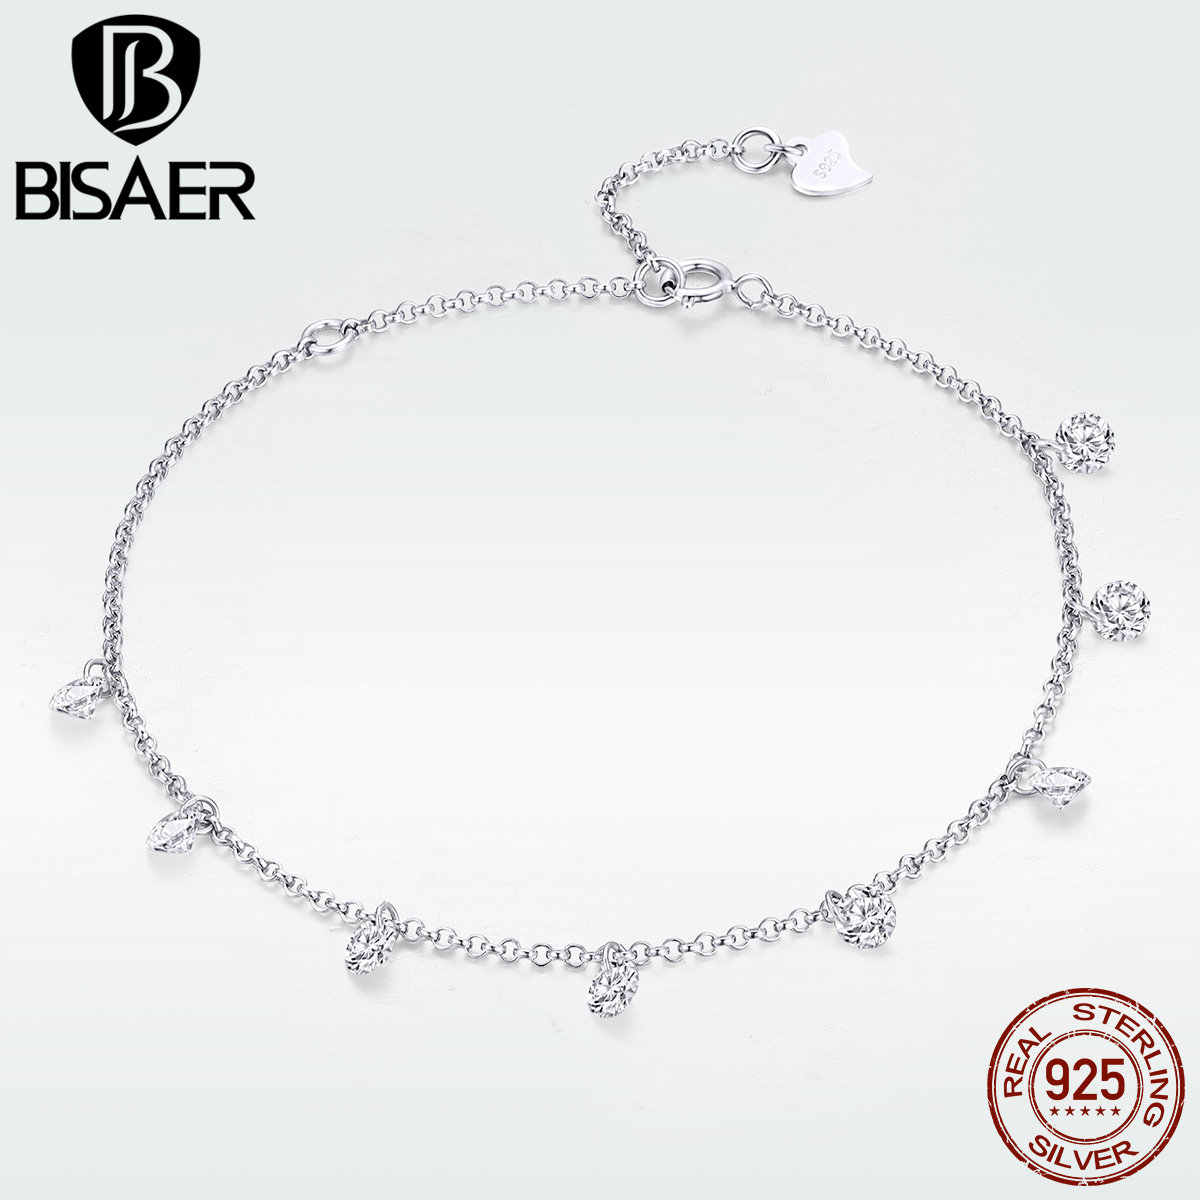 02032a3a54c BISAER Silver Bracelet 925 Sterling Silver Chic Simple Clear CZ Bracelet  for Women Fashion Jewelry Luxury